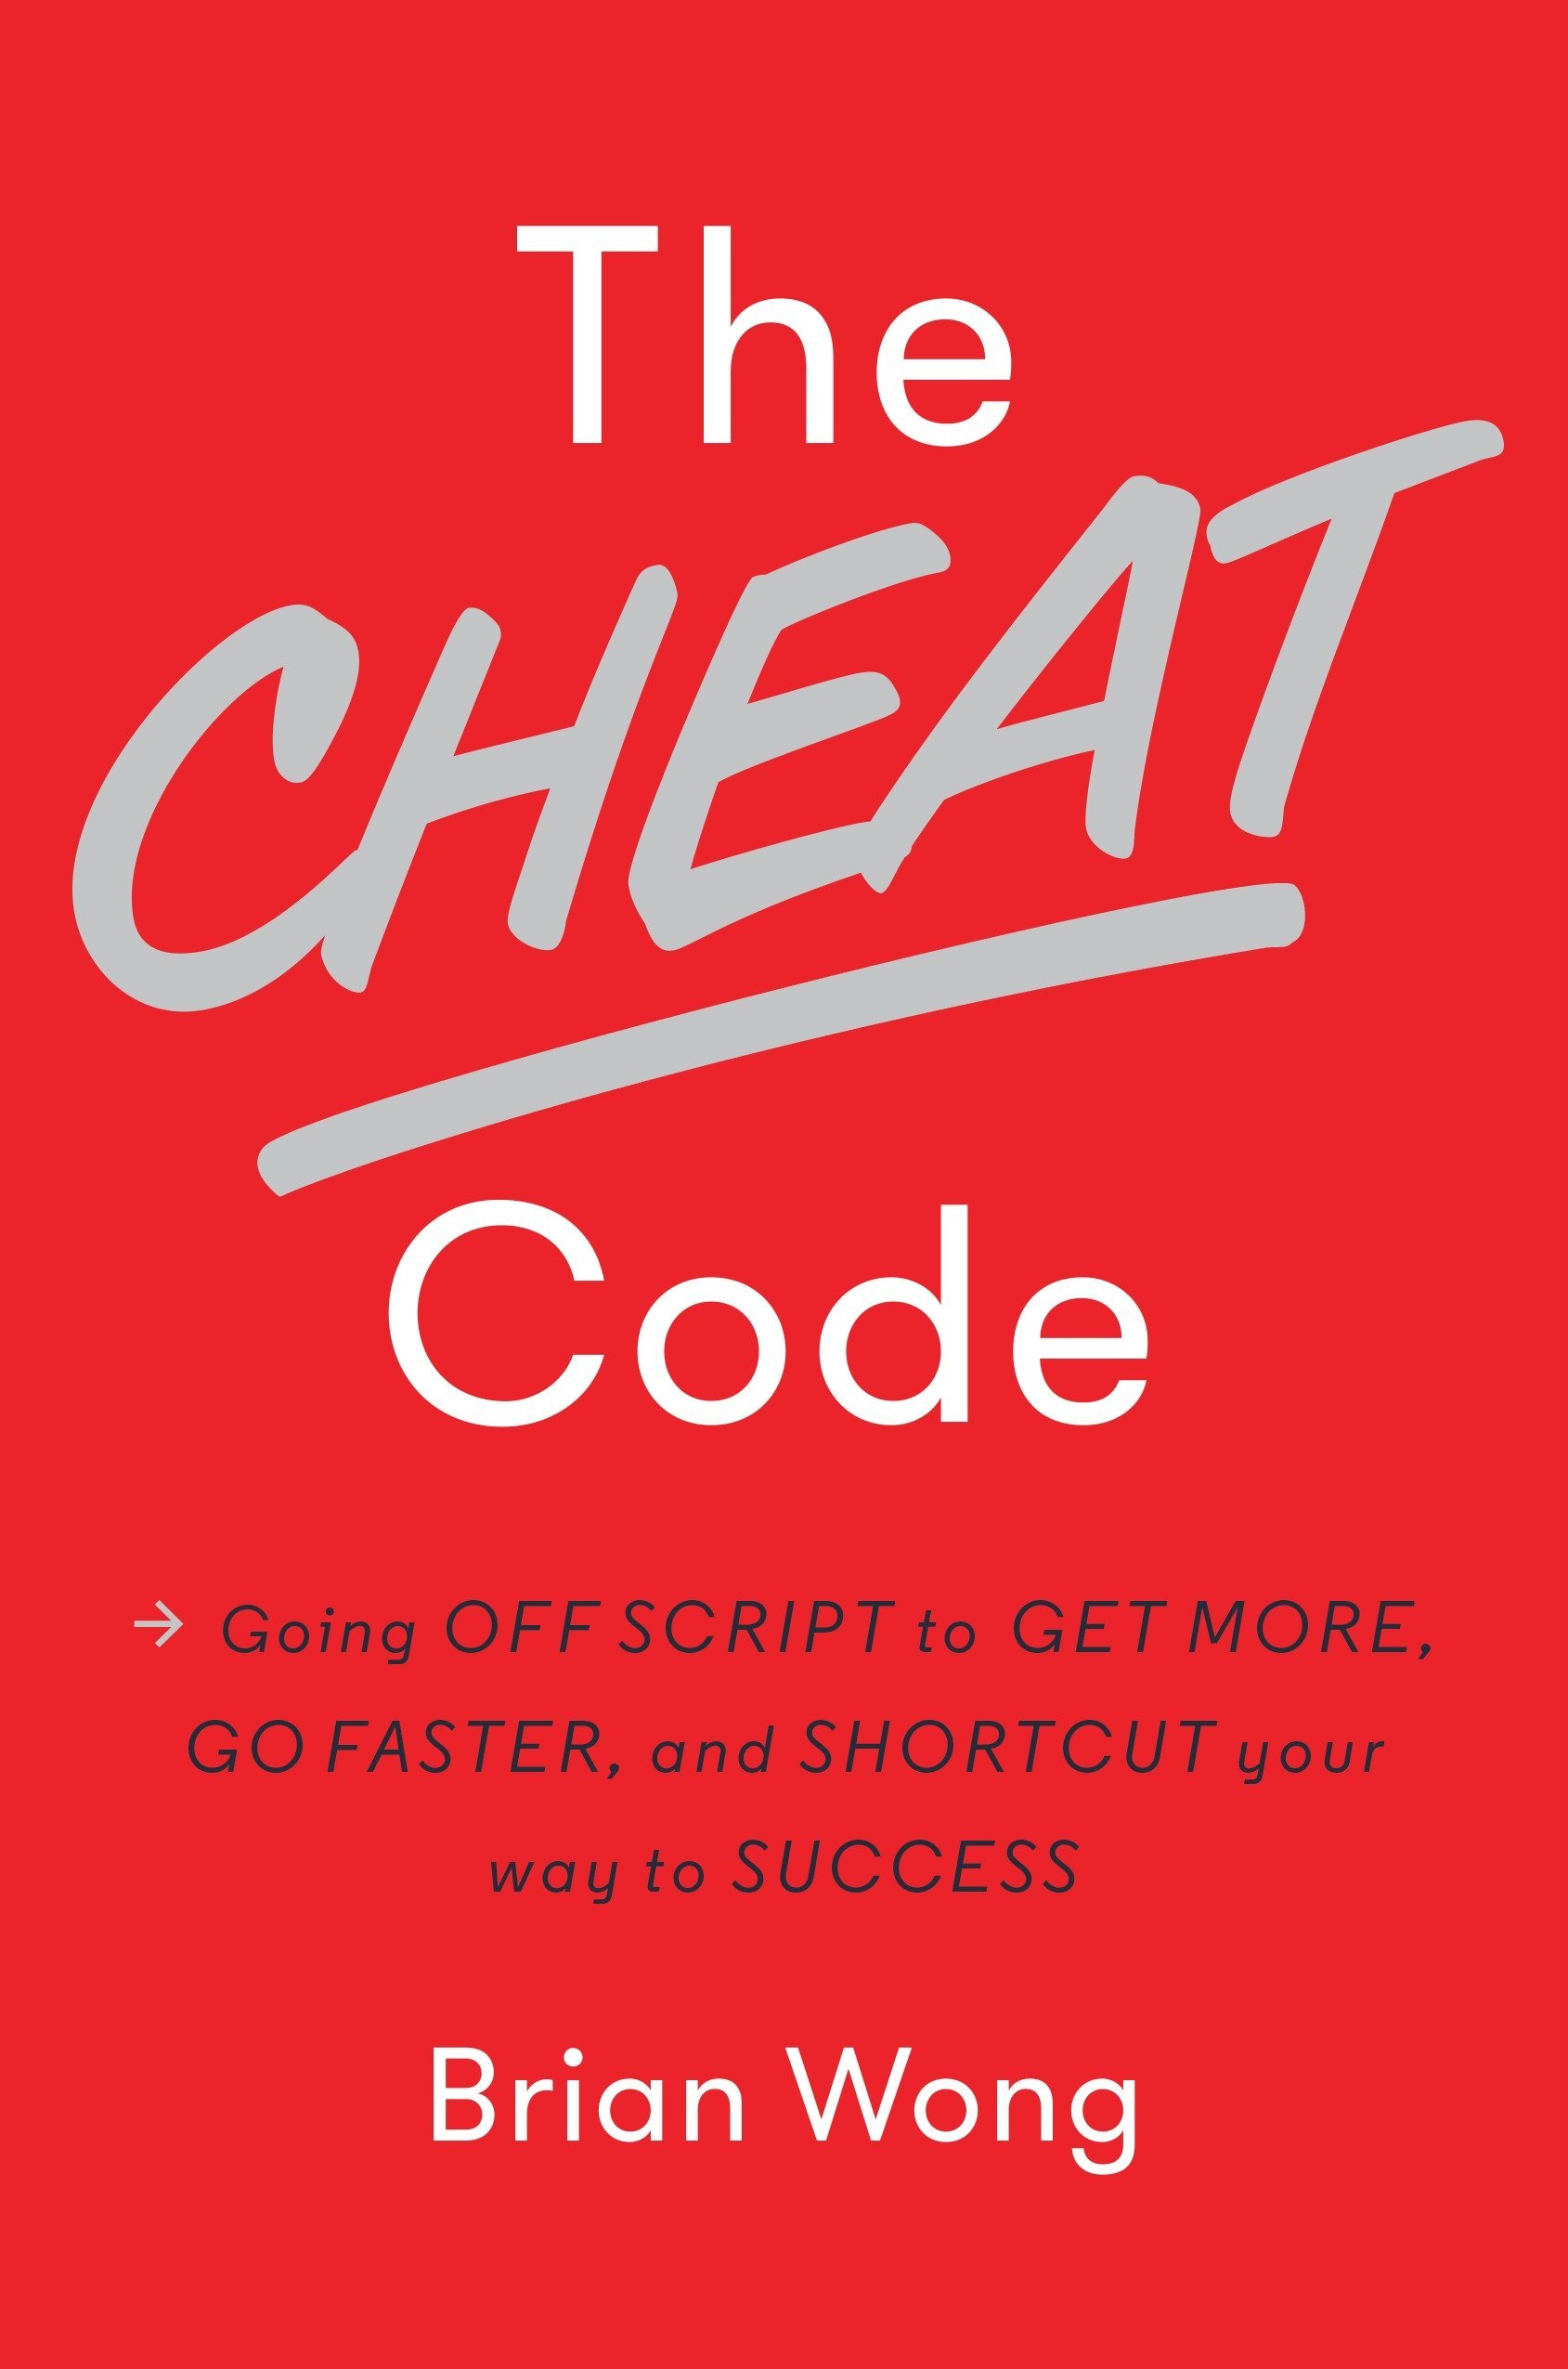 Amazon Com The Cheat Code Going Off Script To Get More Go Faster And Shortcut Your Way To Success 9781101904961 Wong Brian Books